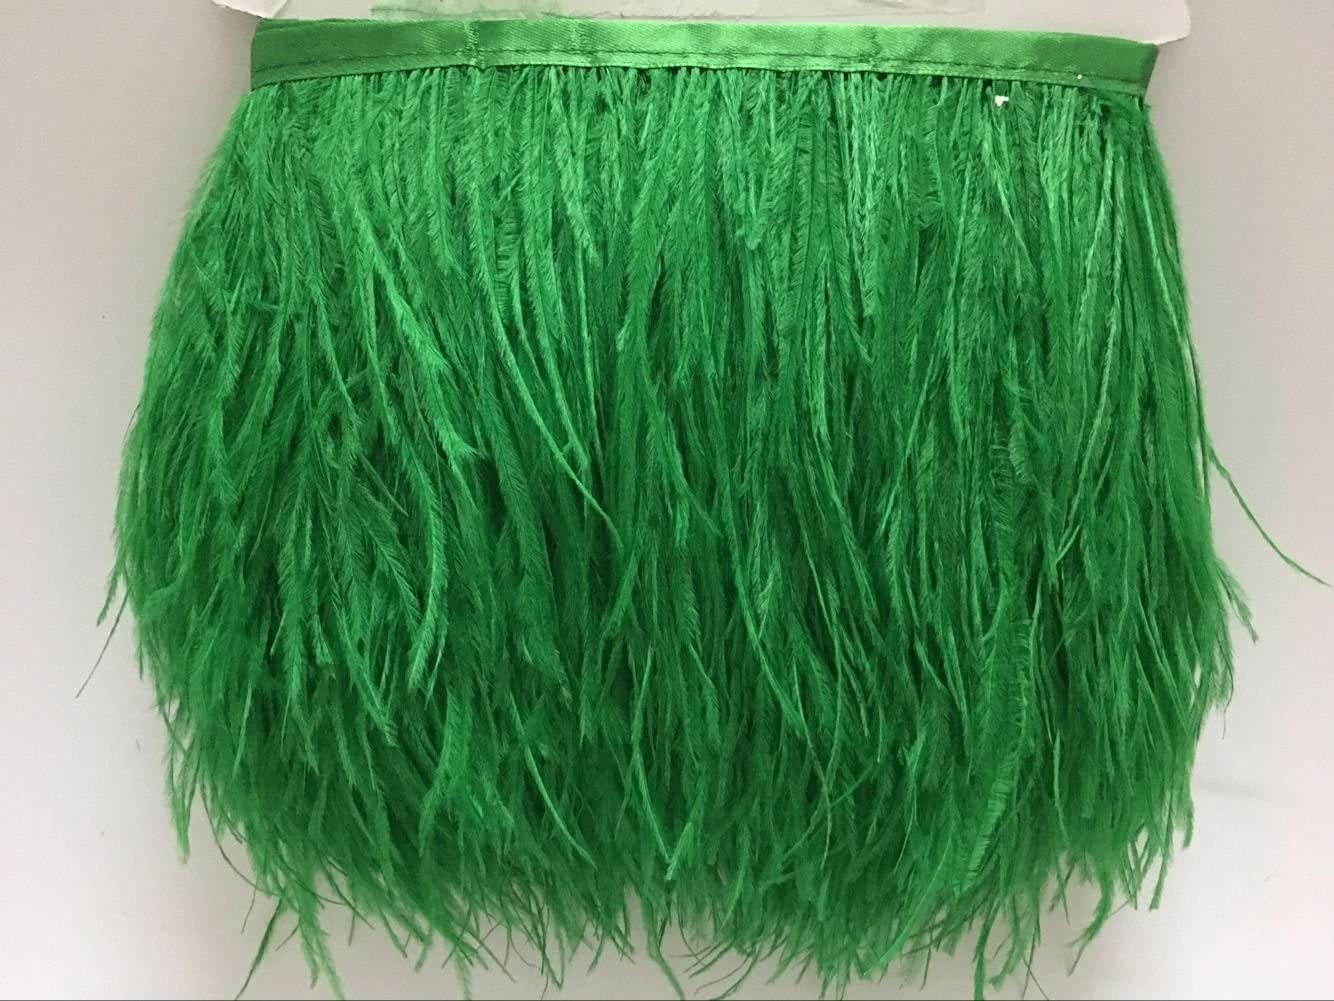 CENFRY Pack of 10yards Ostrich Ranking TOP11 Sales of SALE items from new works Fringe Dress Sewin Feathers Trims